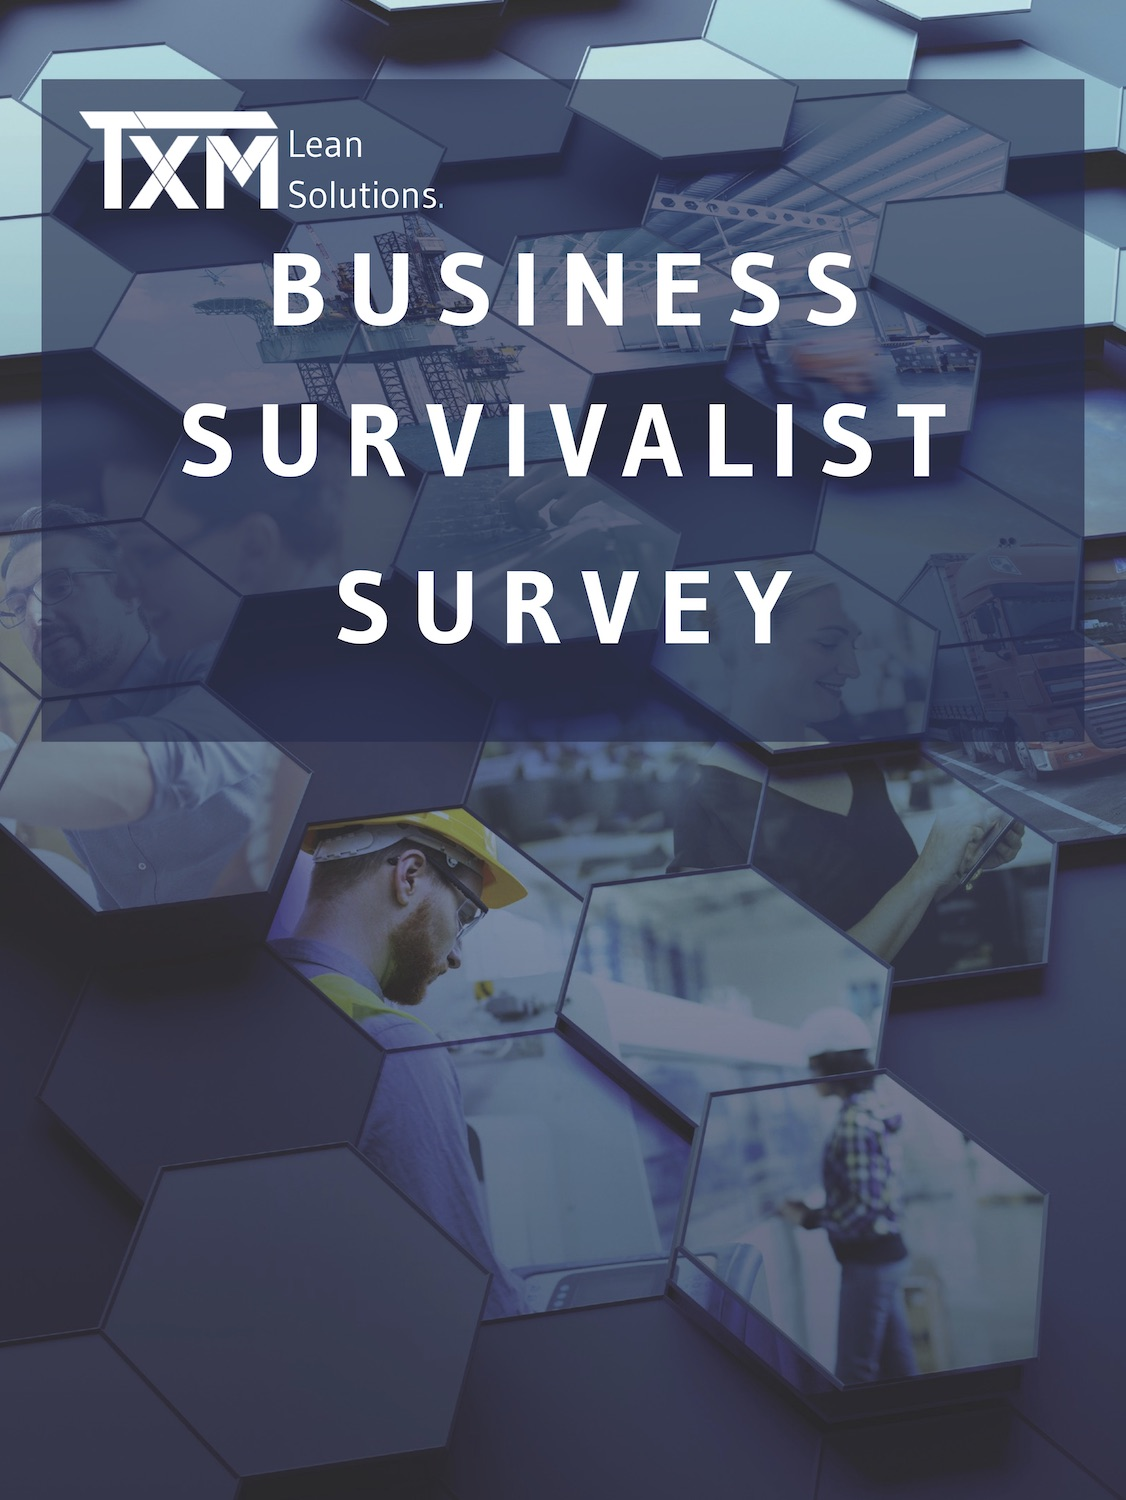 Business Survivialist Survey Cover